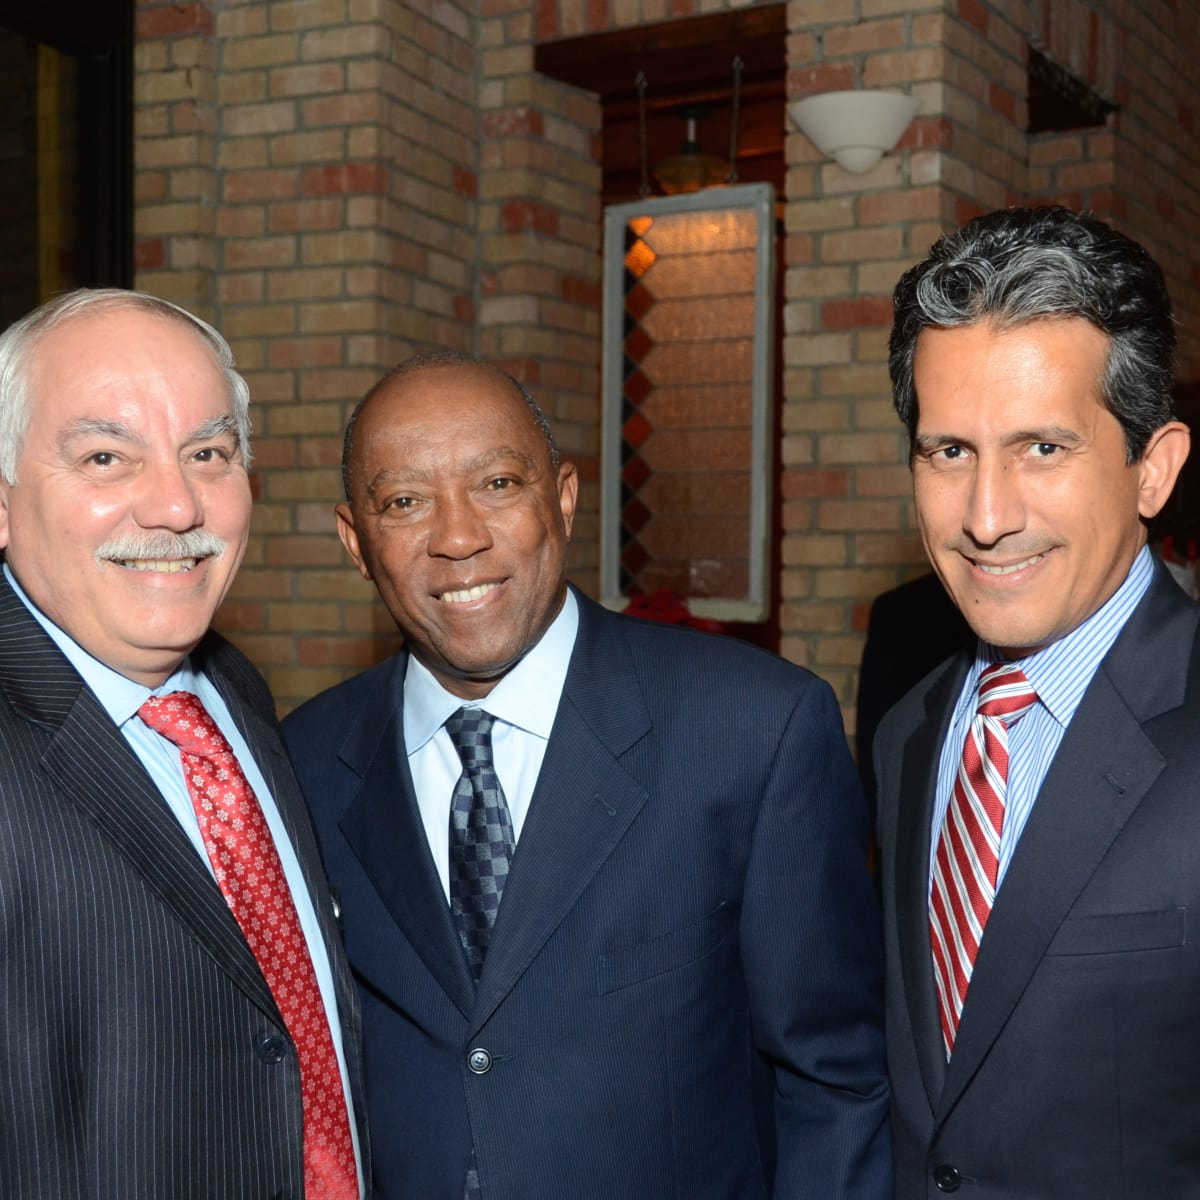 News, Mayor's Hispanic Advisory Board party, Dec. 2015, Johnny Villarreal, Sylvester Turner, Christopher Navarro